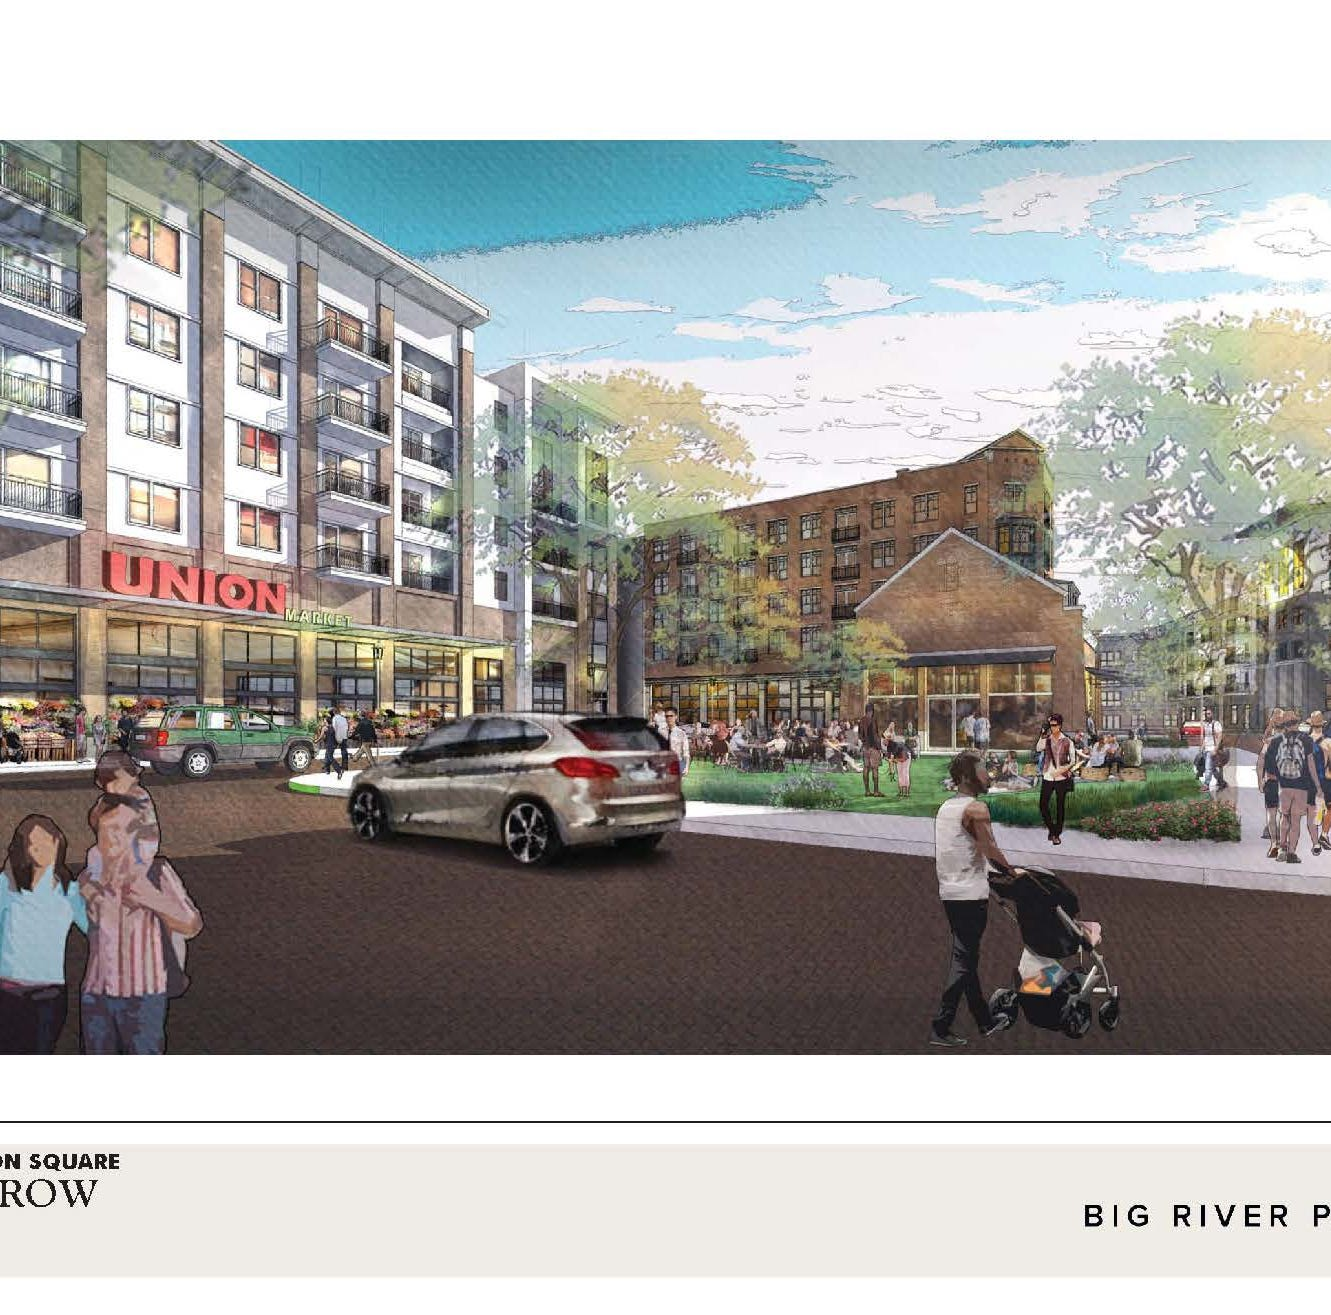 County commission puts faith in Union Row developers, grants $100M incentive